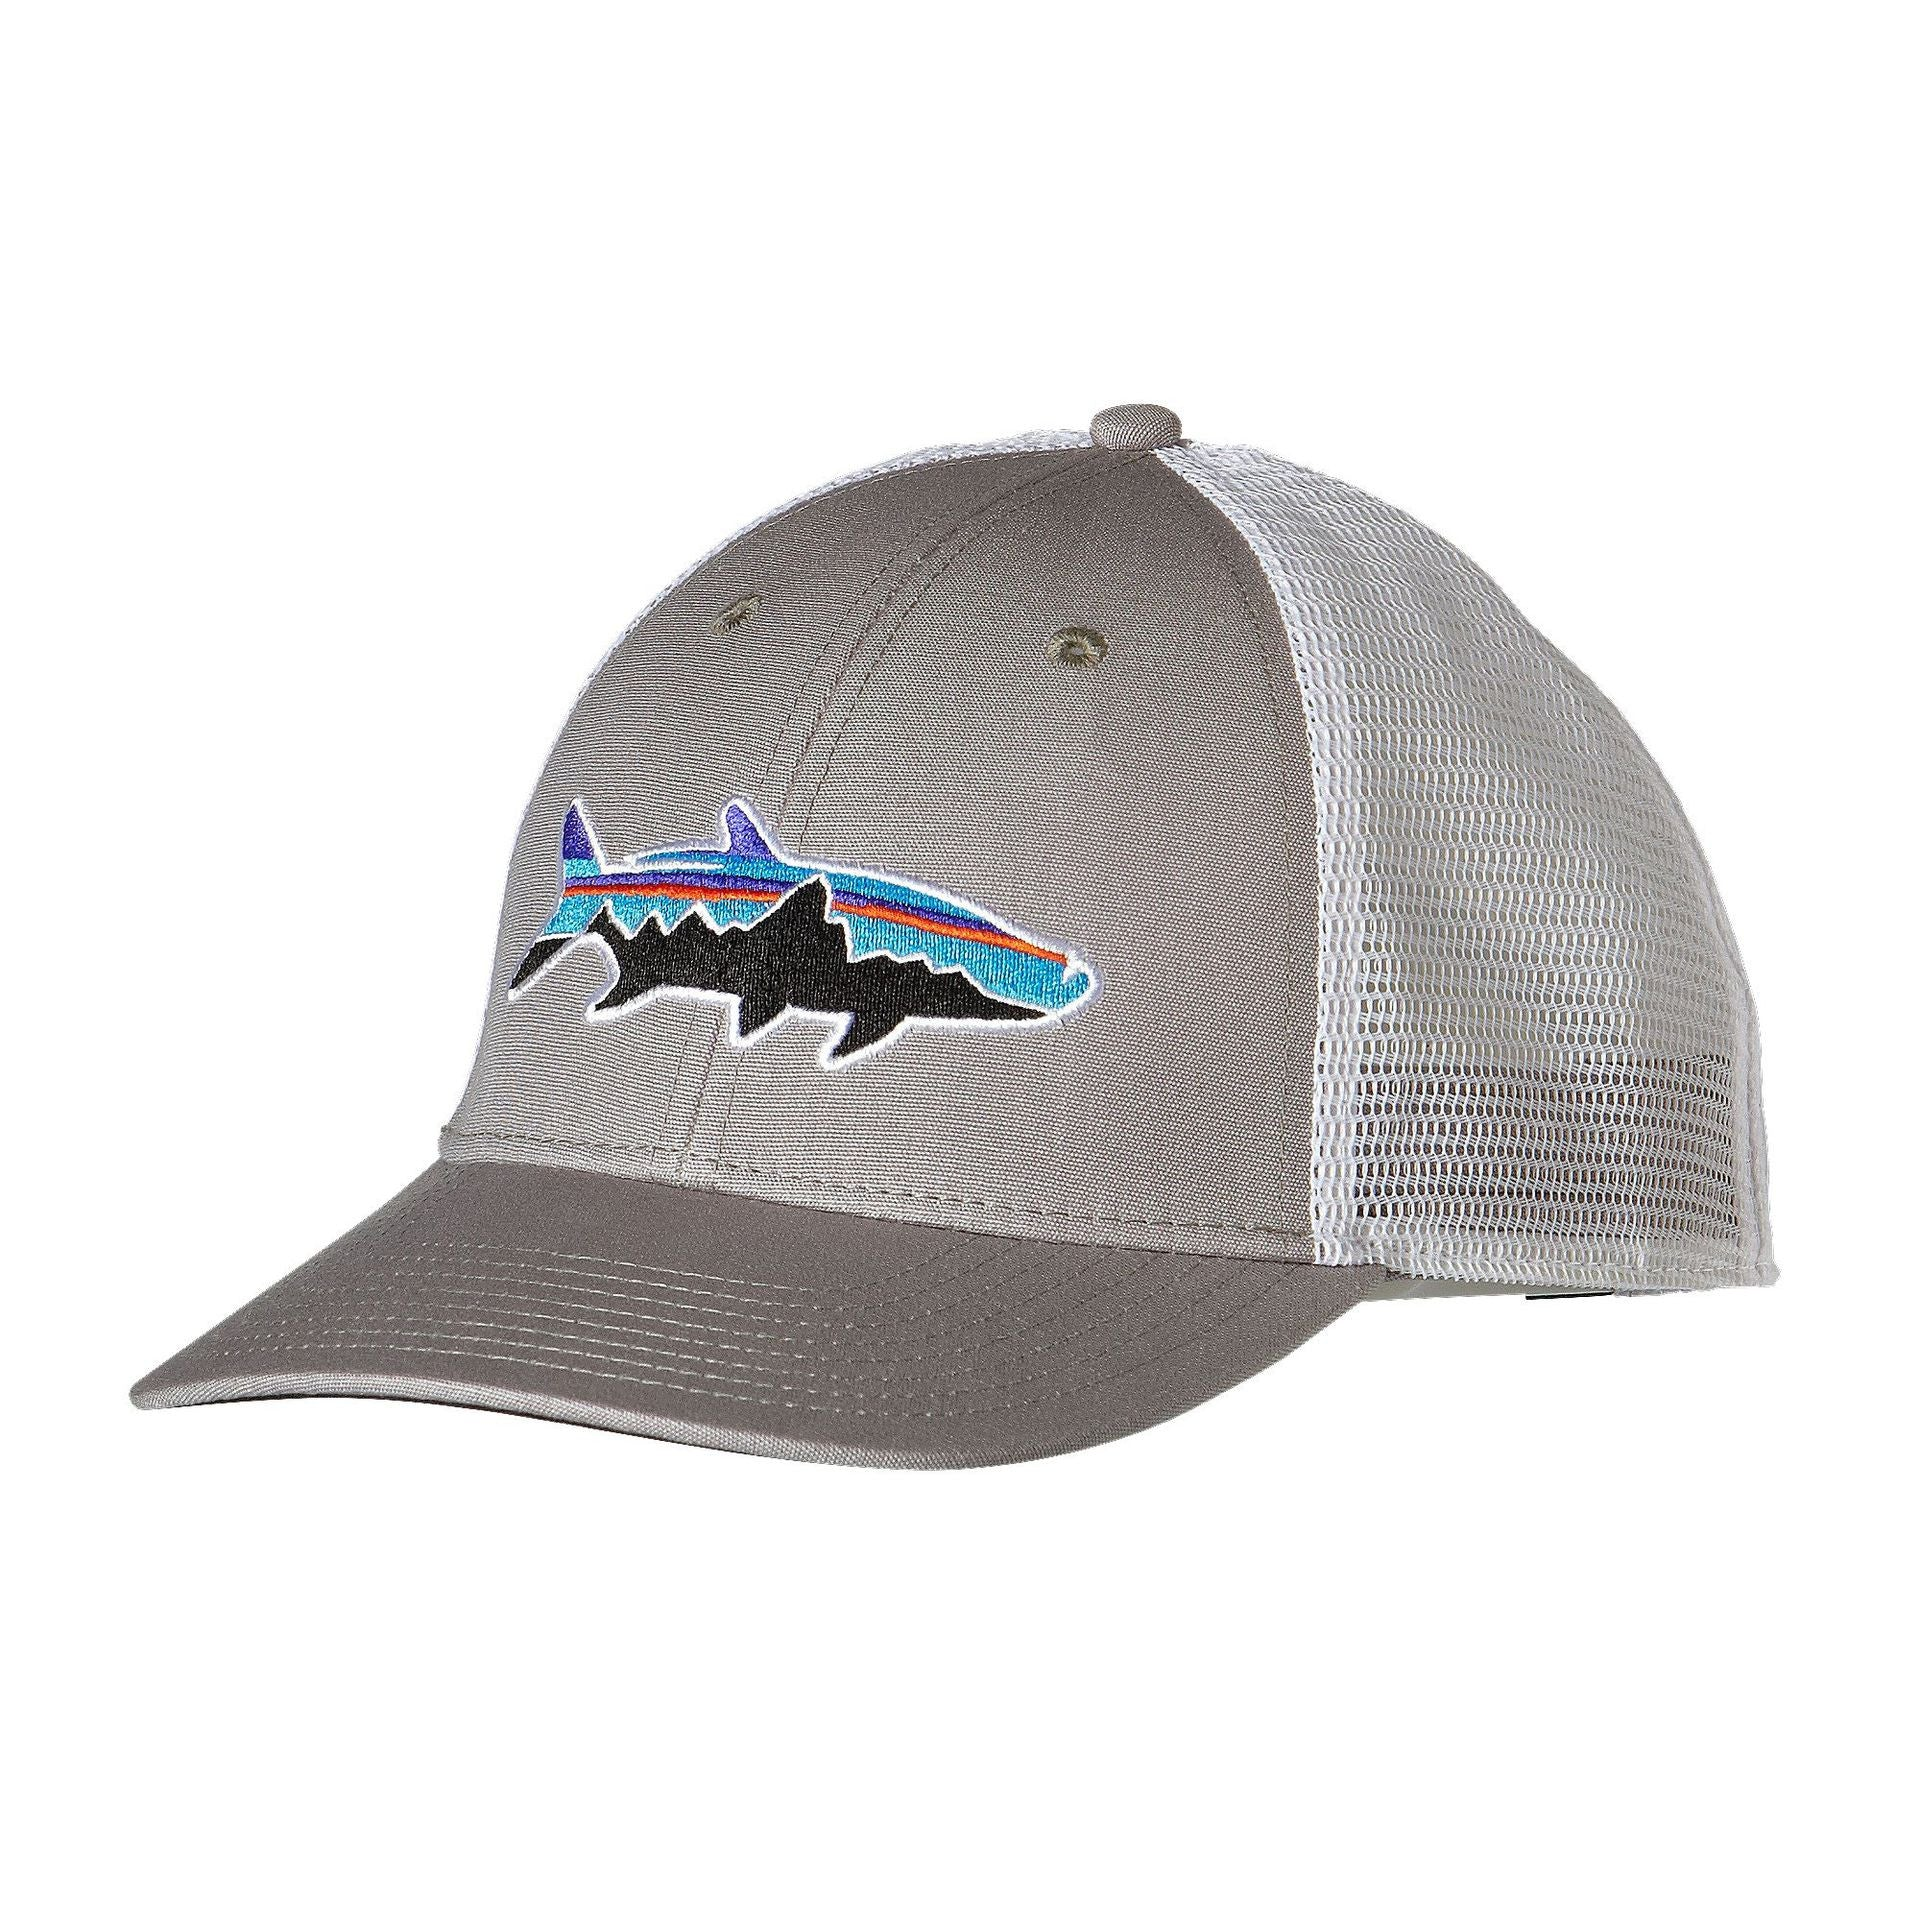 Patagonia Fitz Roy Tarpon LoPro Trucker Hat Drifter Grey - Andy Thornal  Company a0577bb5b90